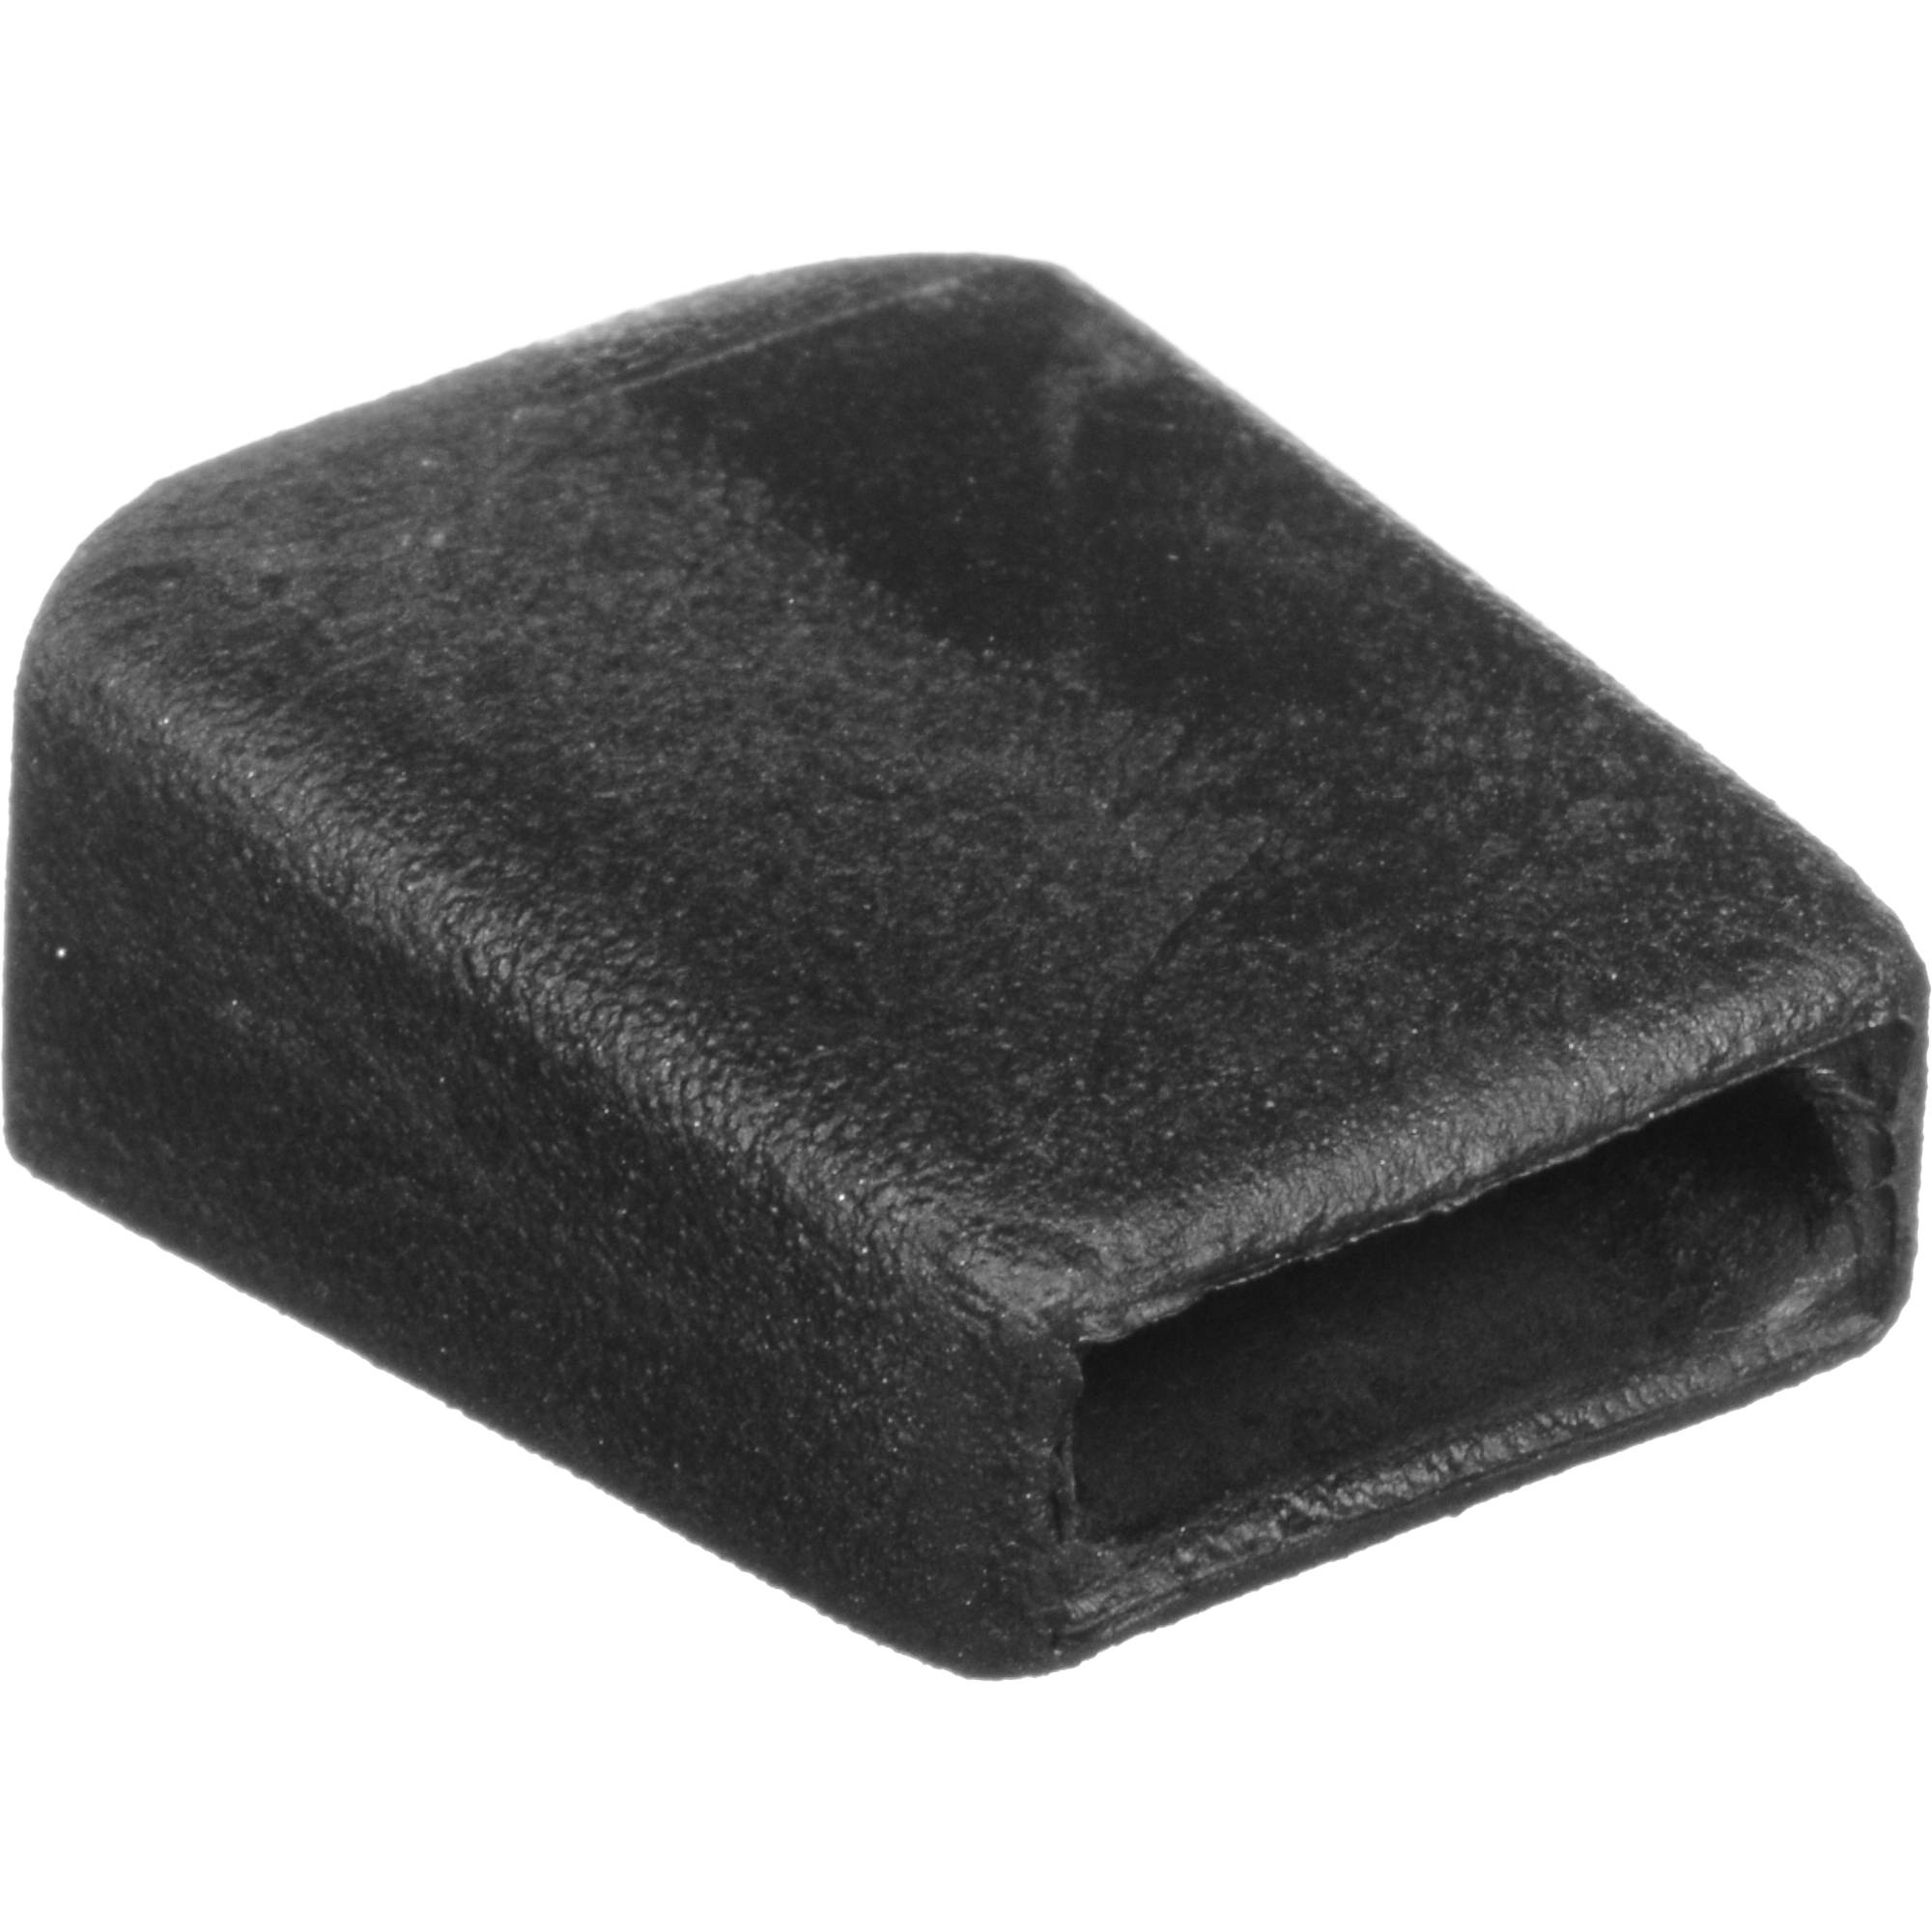 Manfrotto R001.32 Replacement Rubber Feet For Select R001